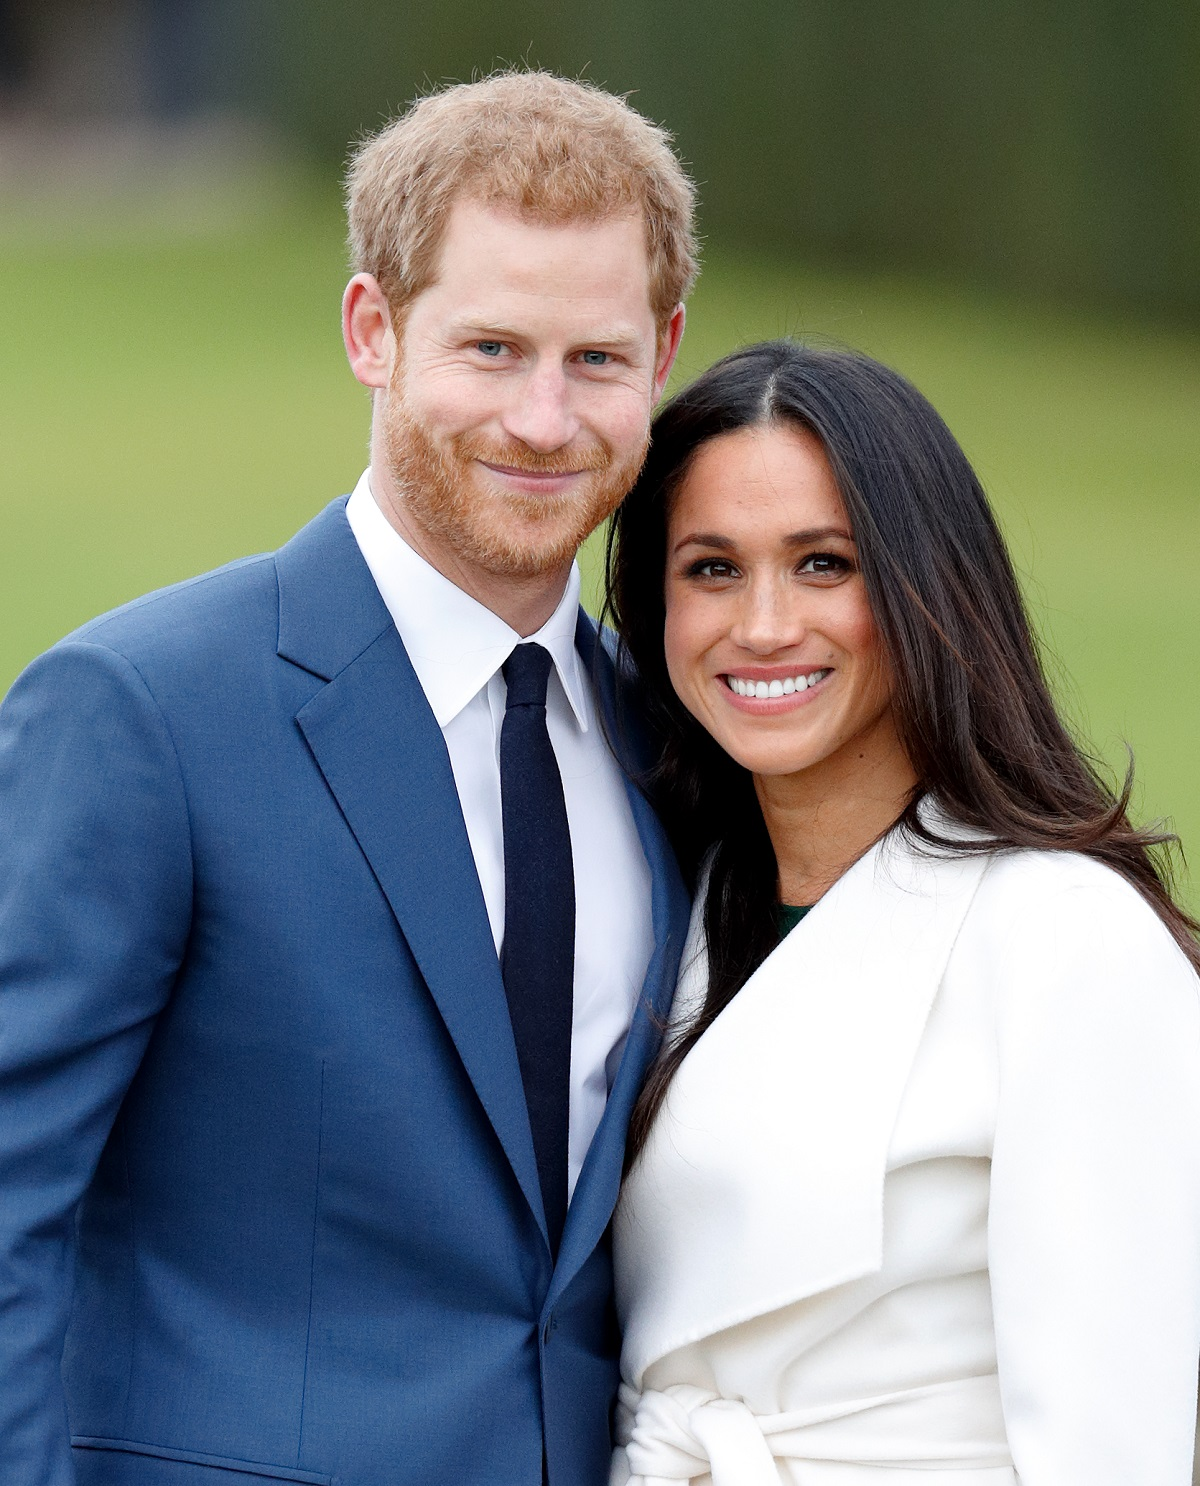 Prince Harry and Meghan Markle smiling at an official photocall to announce their engagement at The Sunken Gardens, Kensington Palace on November 27, 2017 in London, England